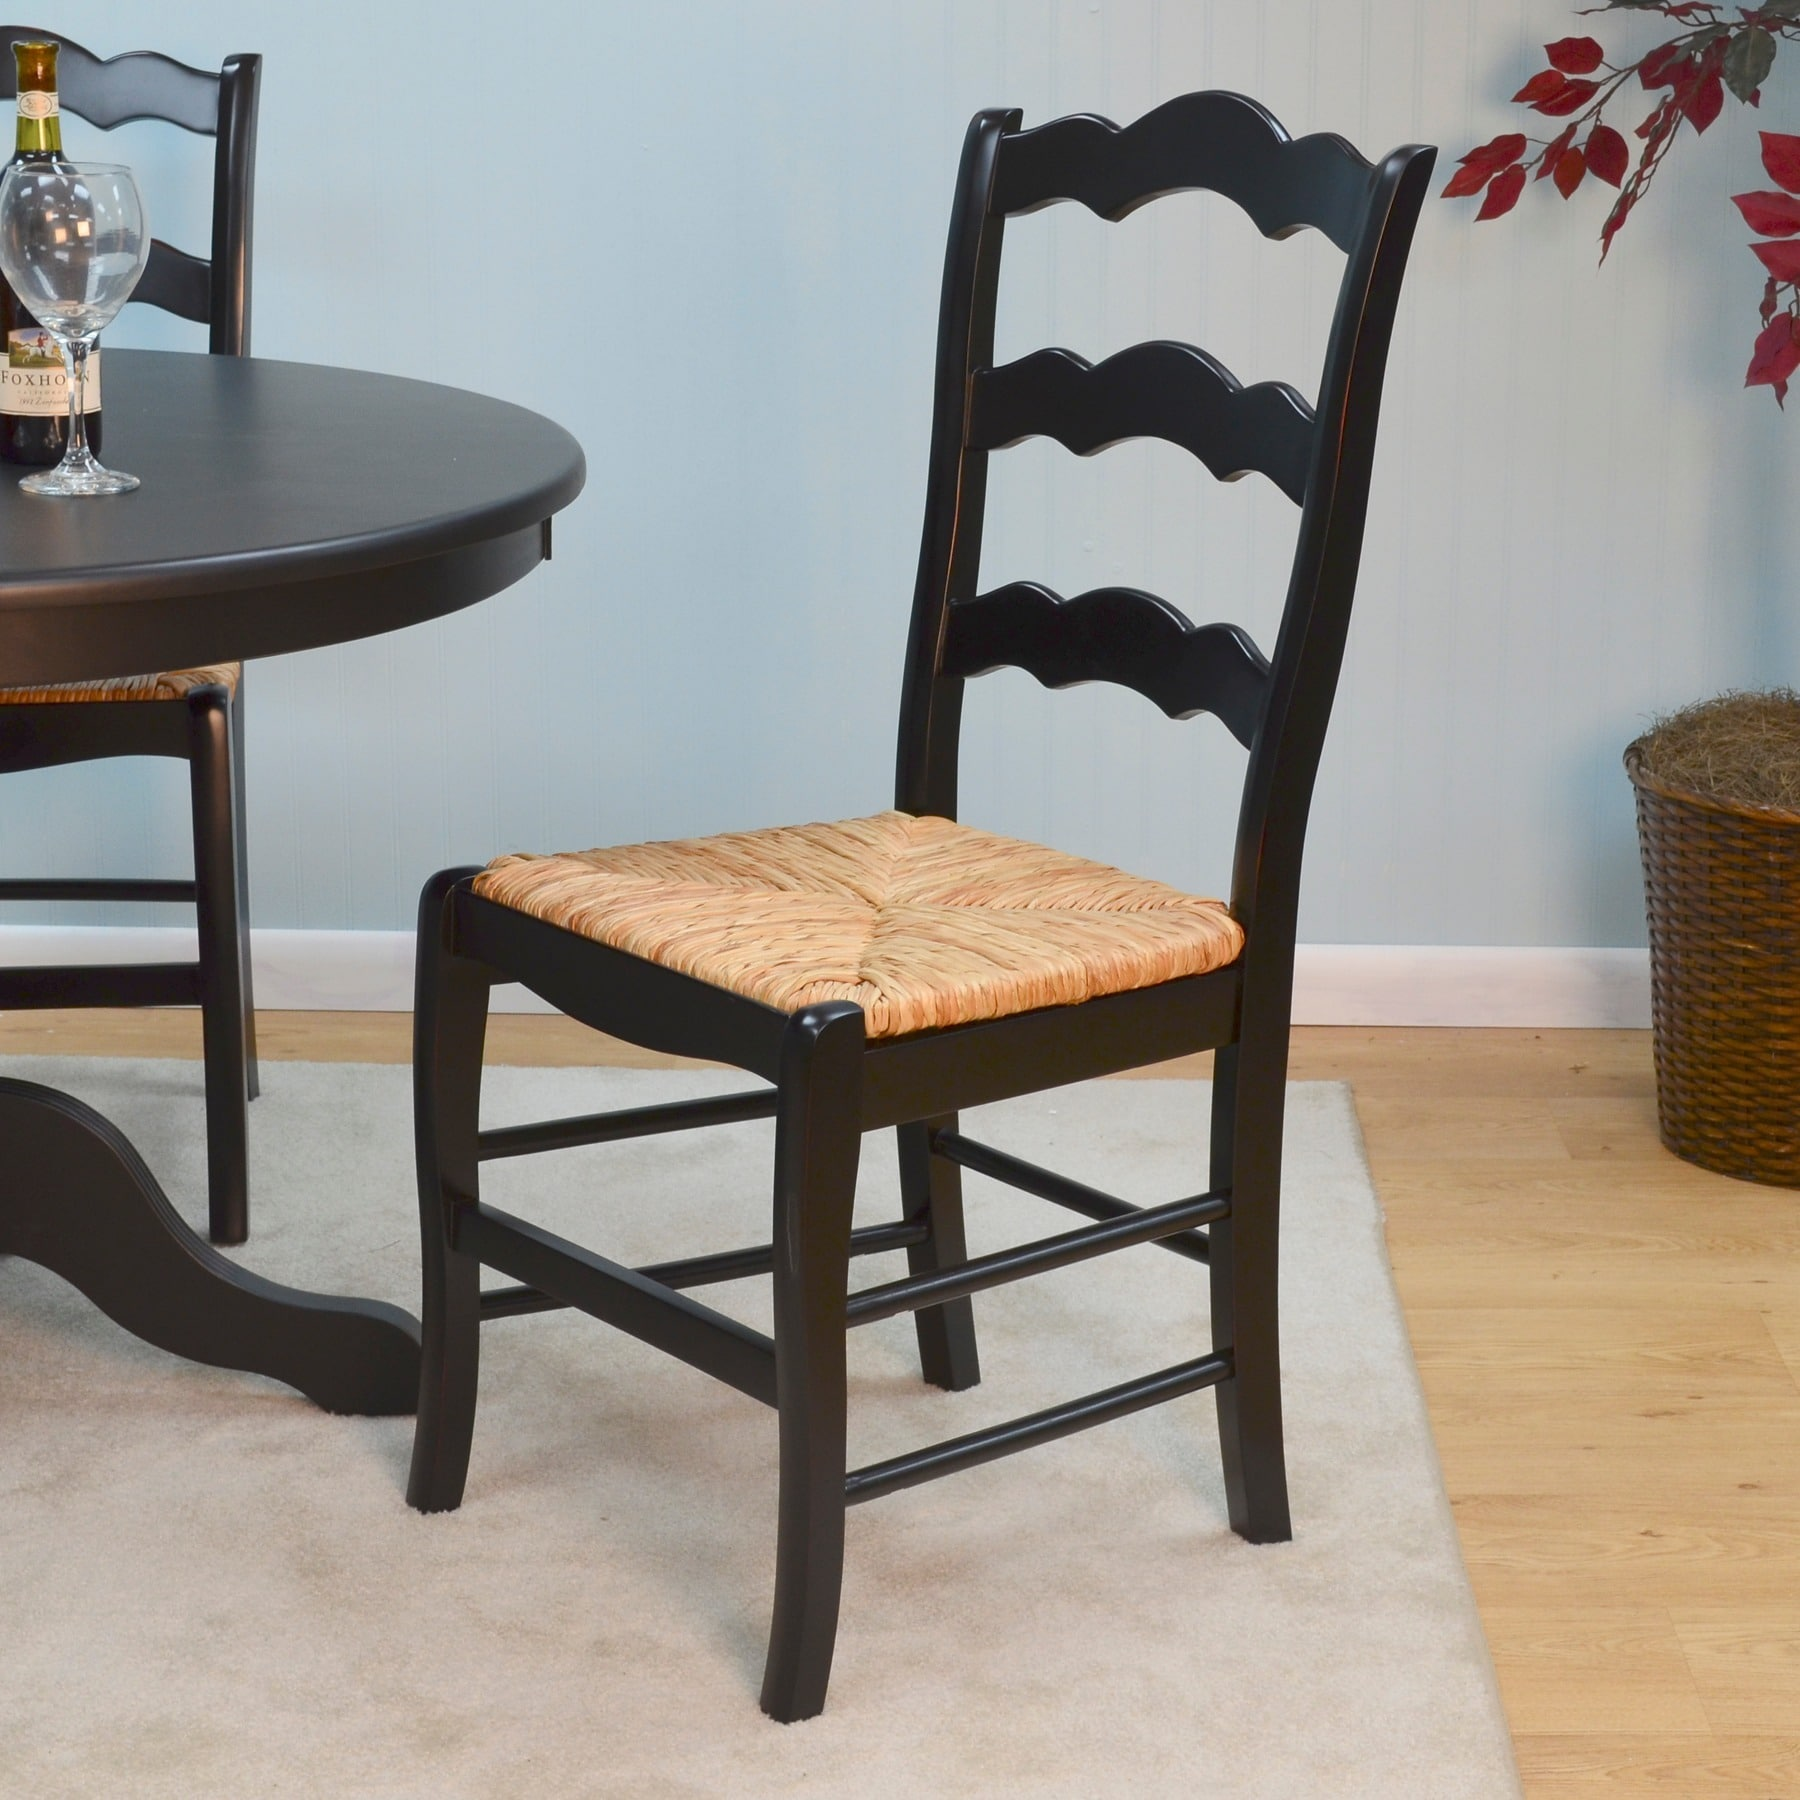 High Back, Oak Kitchen & Dining Room Chairs For Less | Overstock